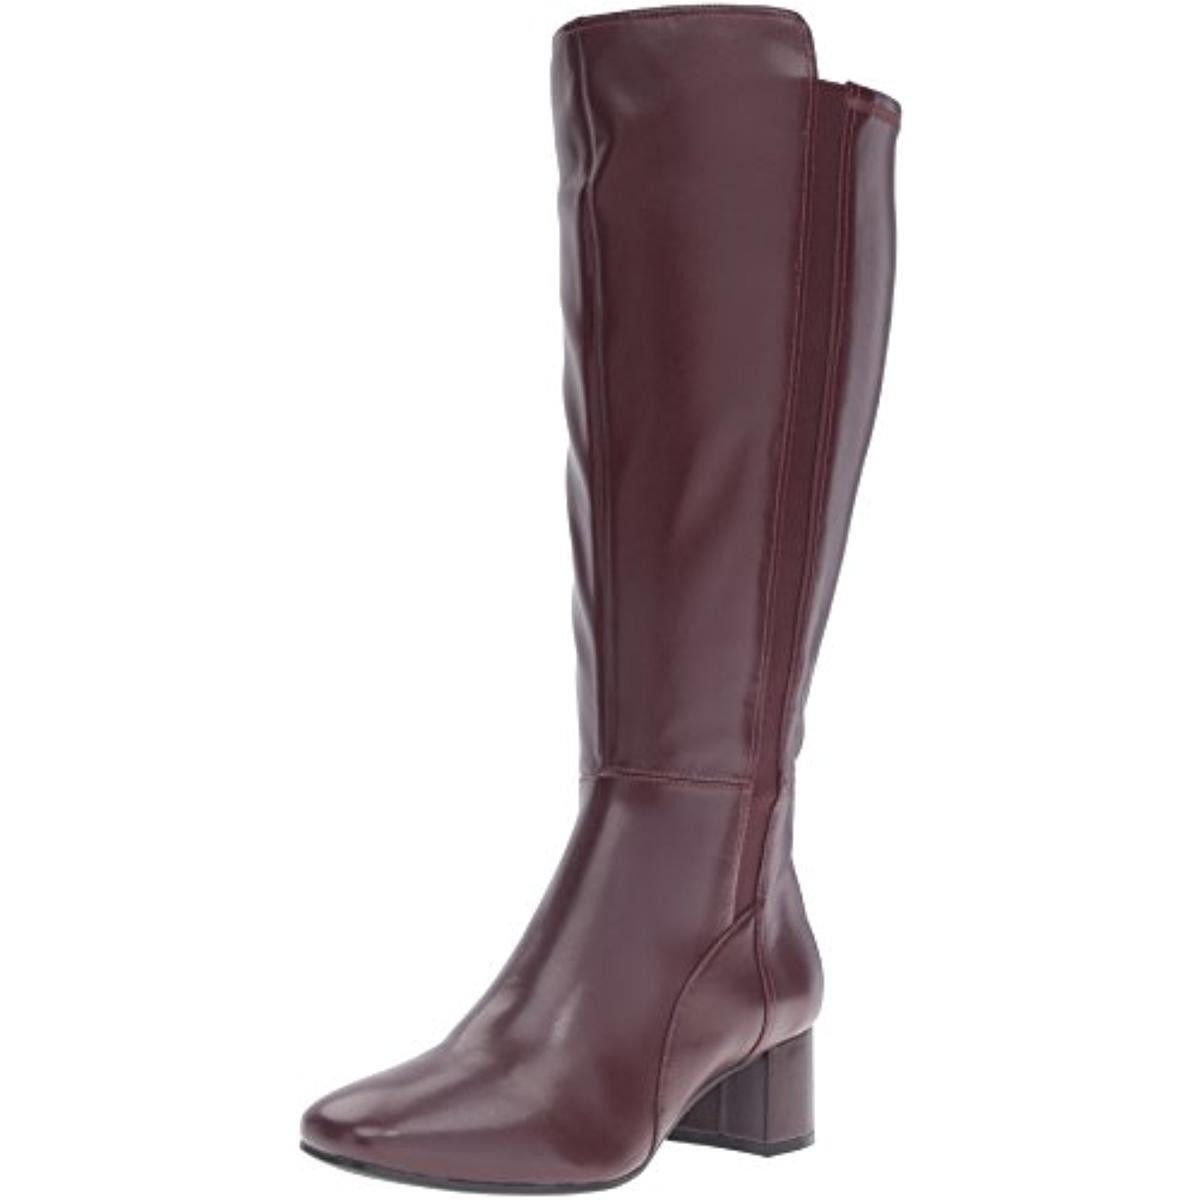 Naturalizer Womens Naples Faux Leather Knee-High Boots